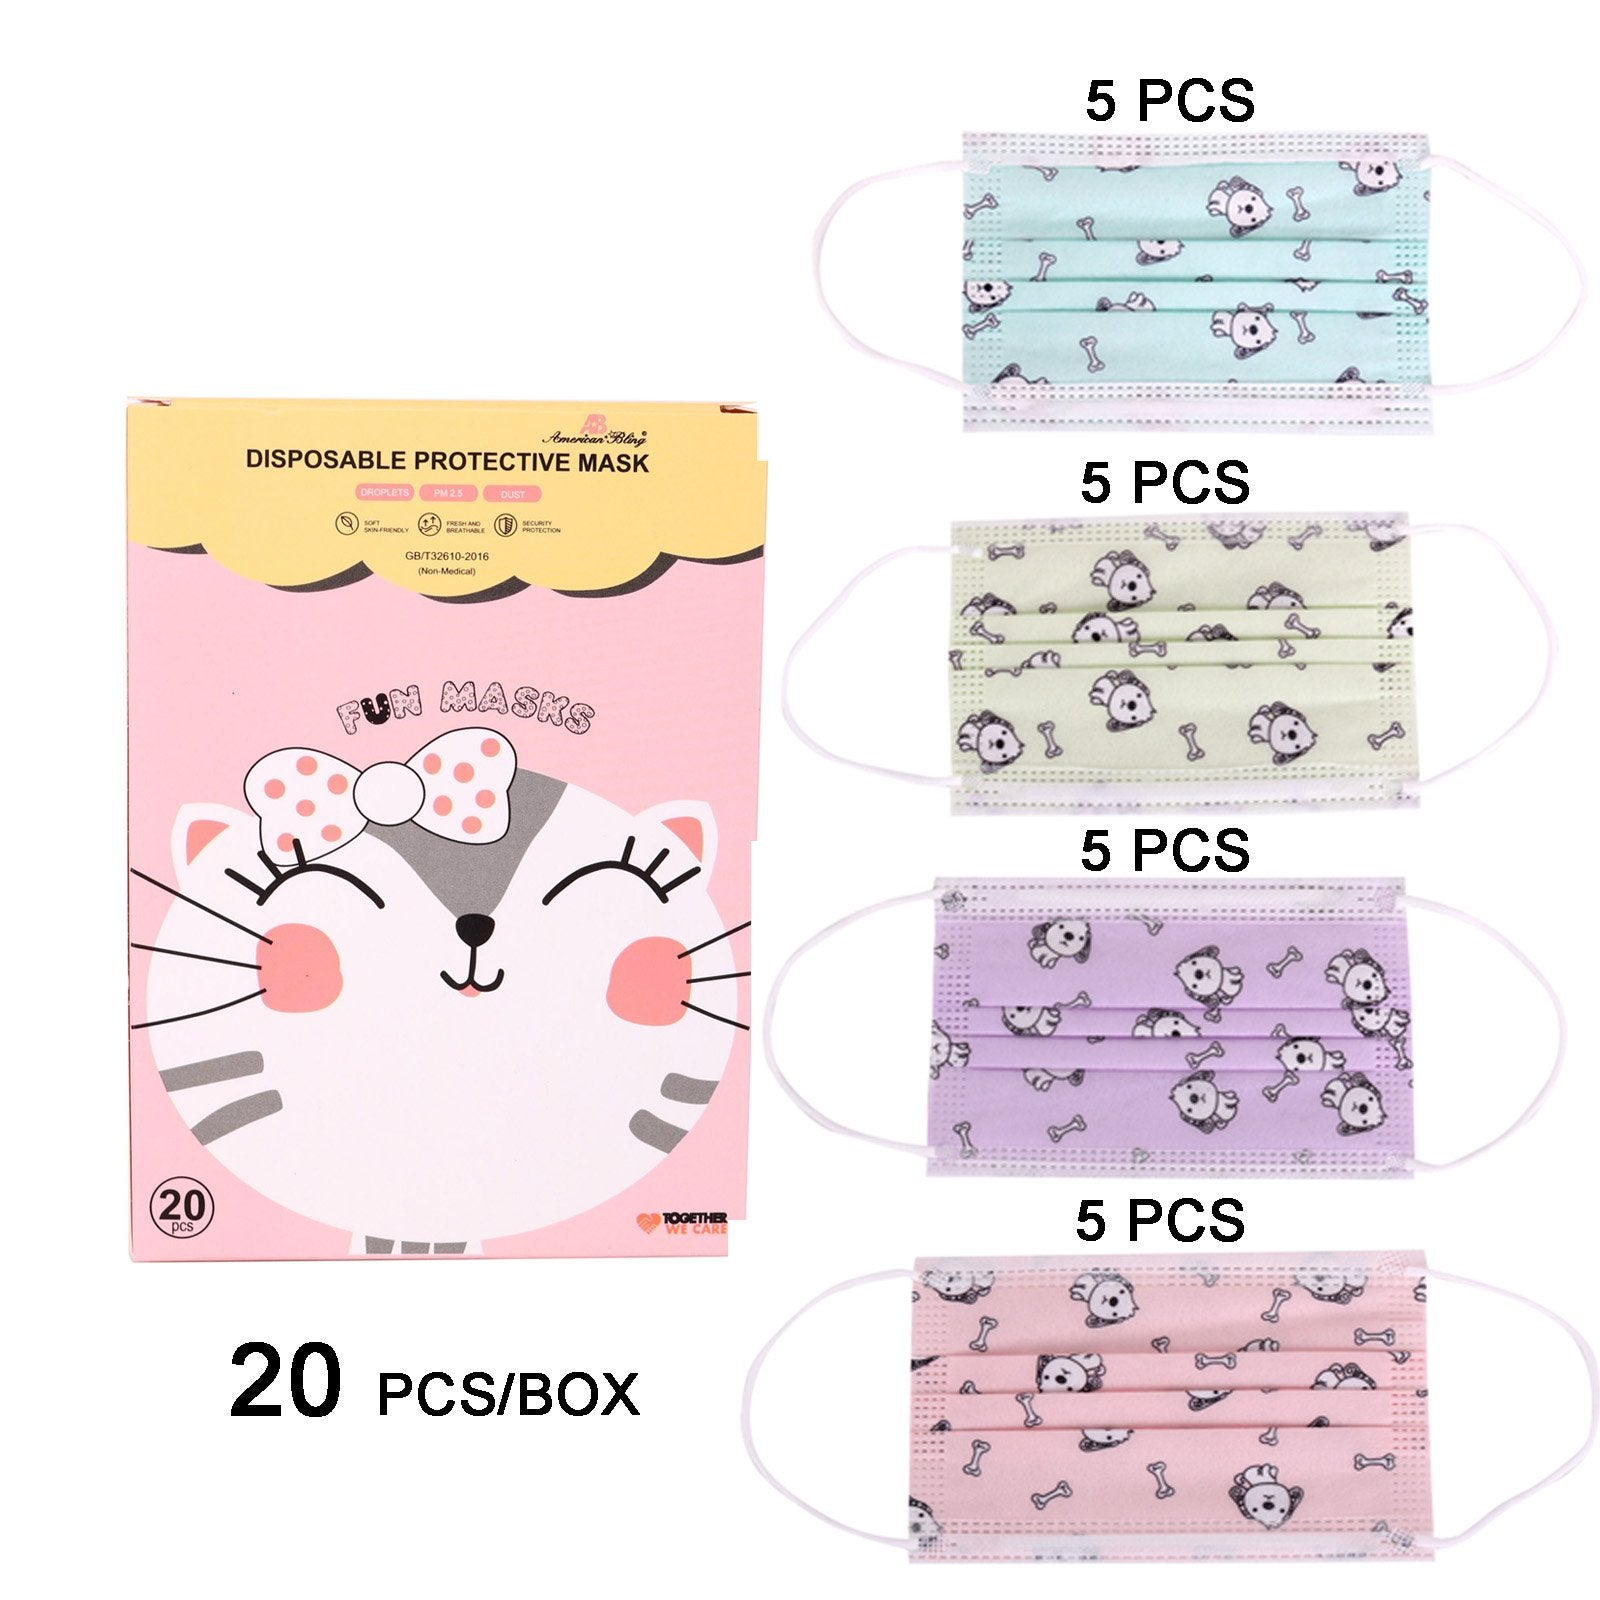 2000Pcs American Bling Kids 3 Ply Disposable Assorted Color Dog & Bone Print Face Mask  (20Pcs/Box)